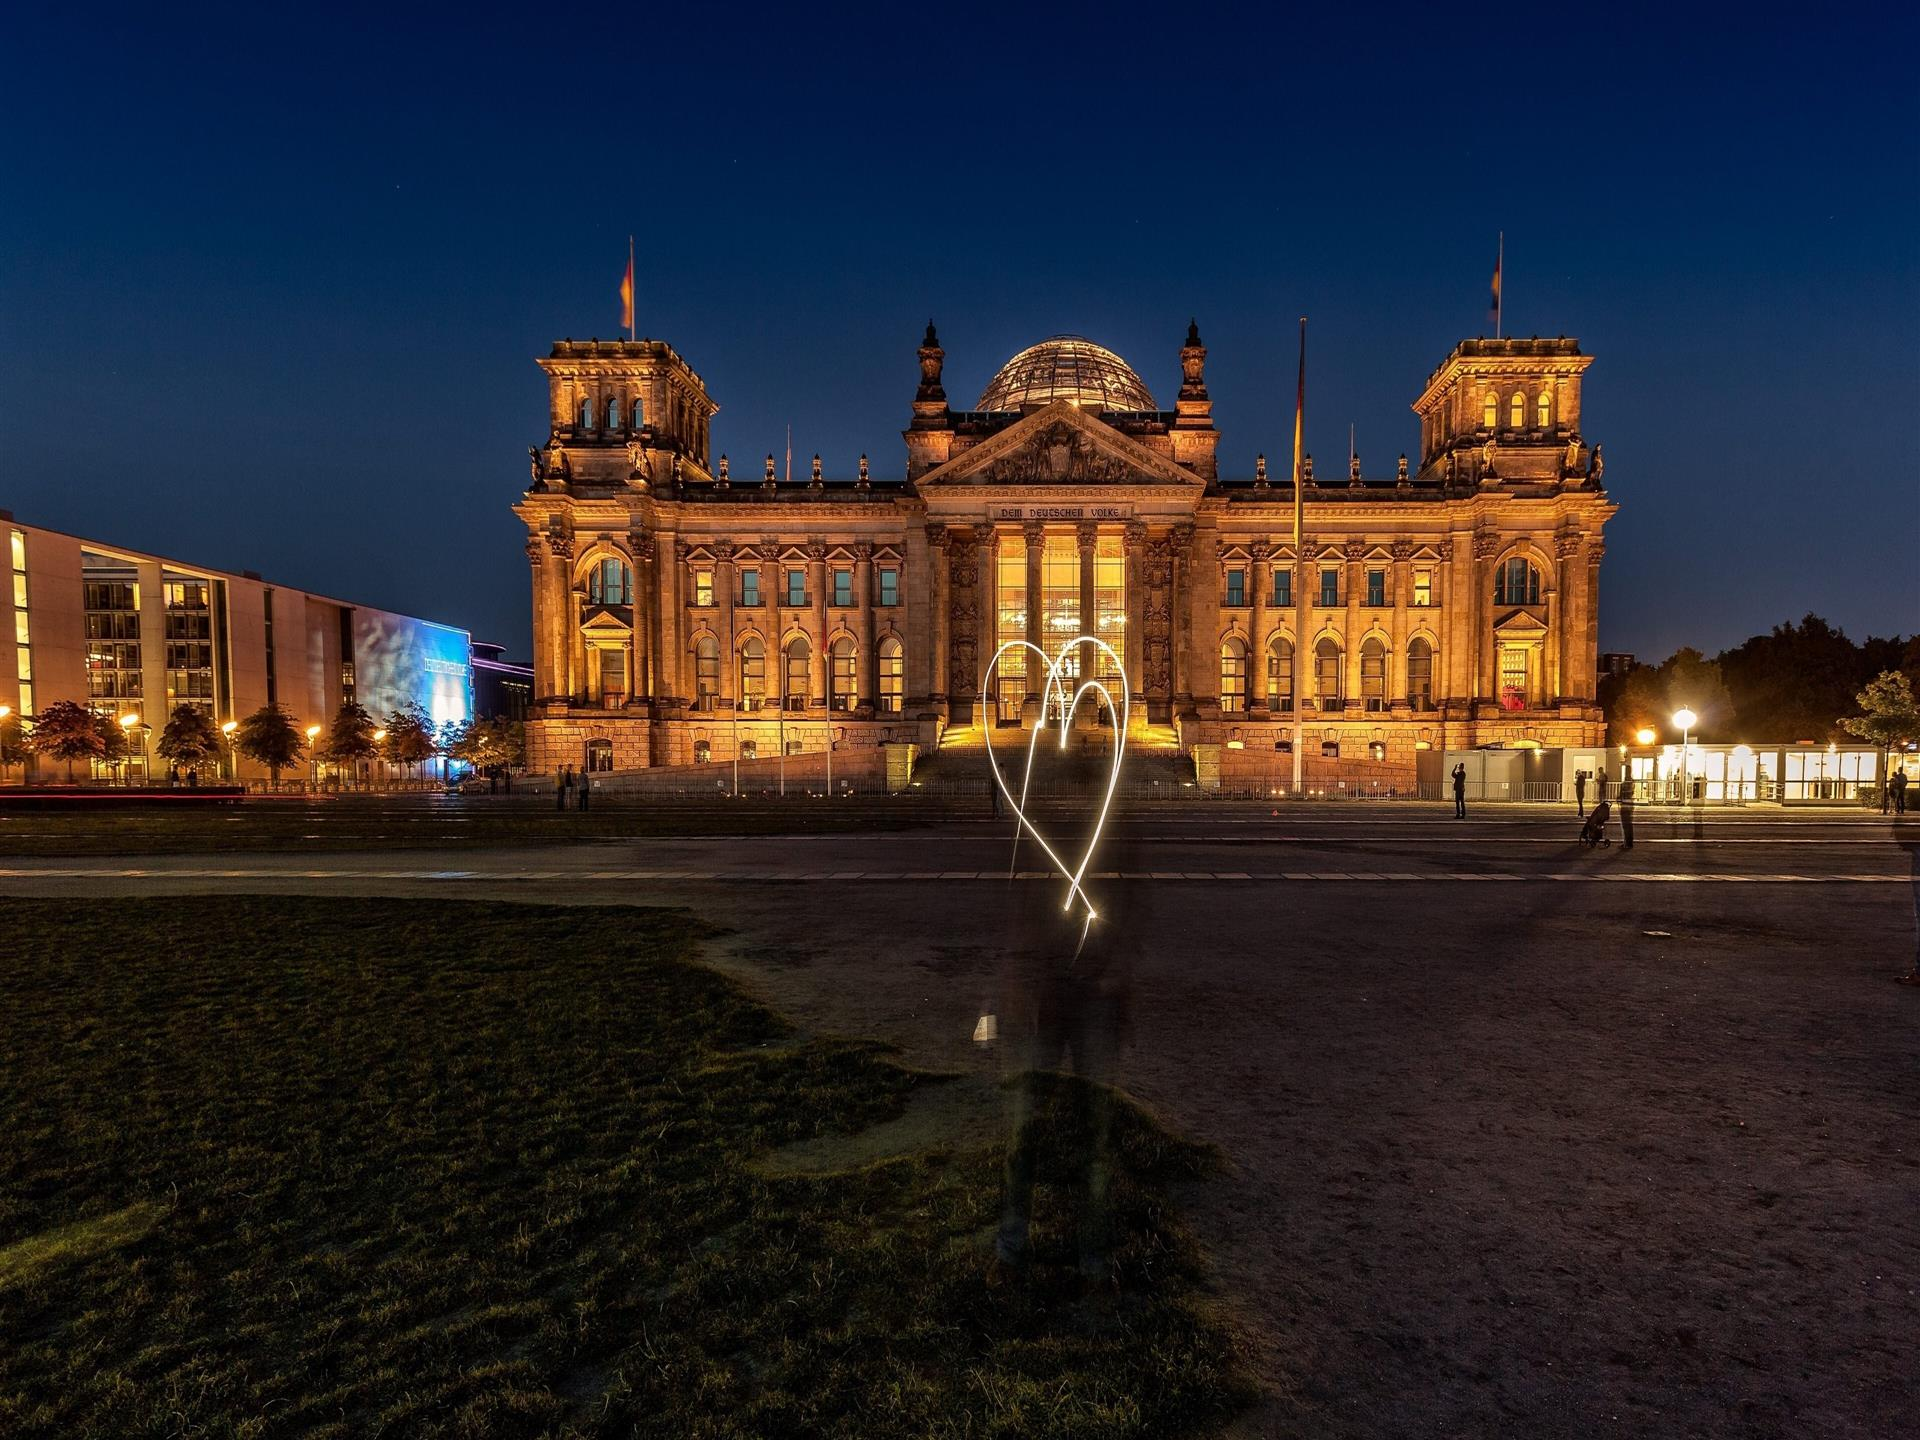 1920x1440 Reichstag Building at Night in Berlin Germany Wallpaper